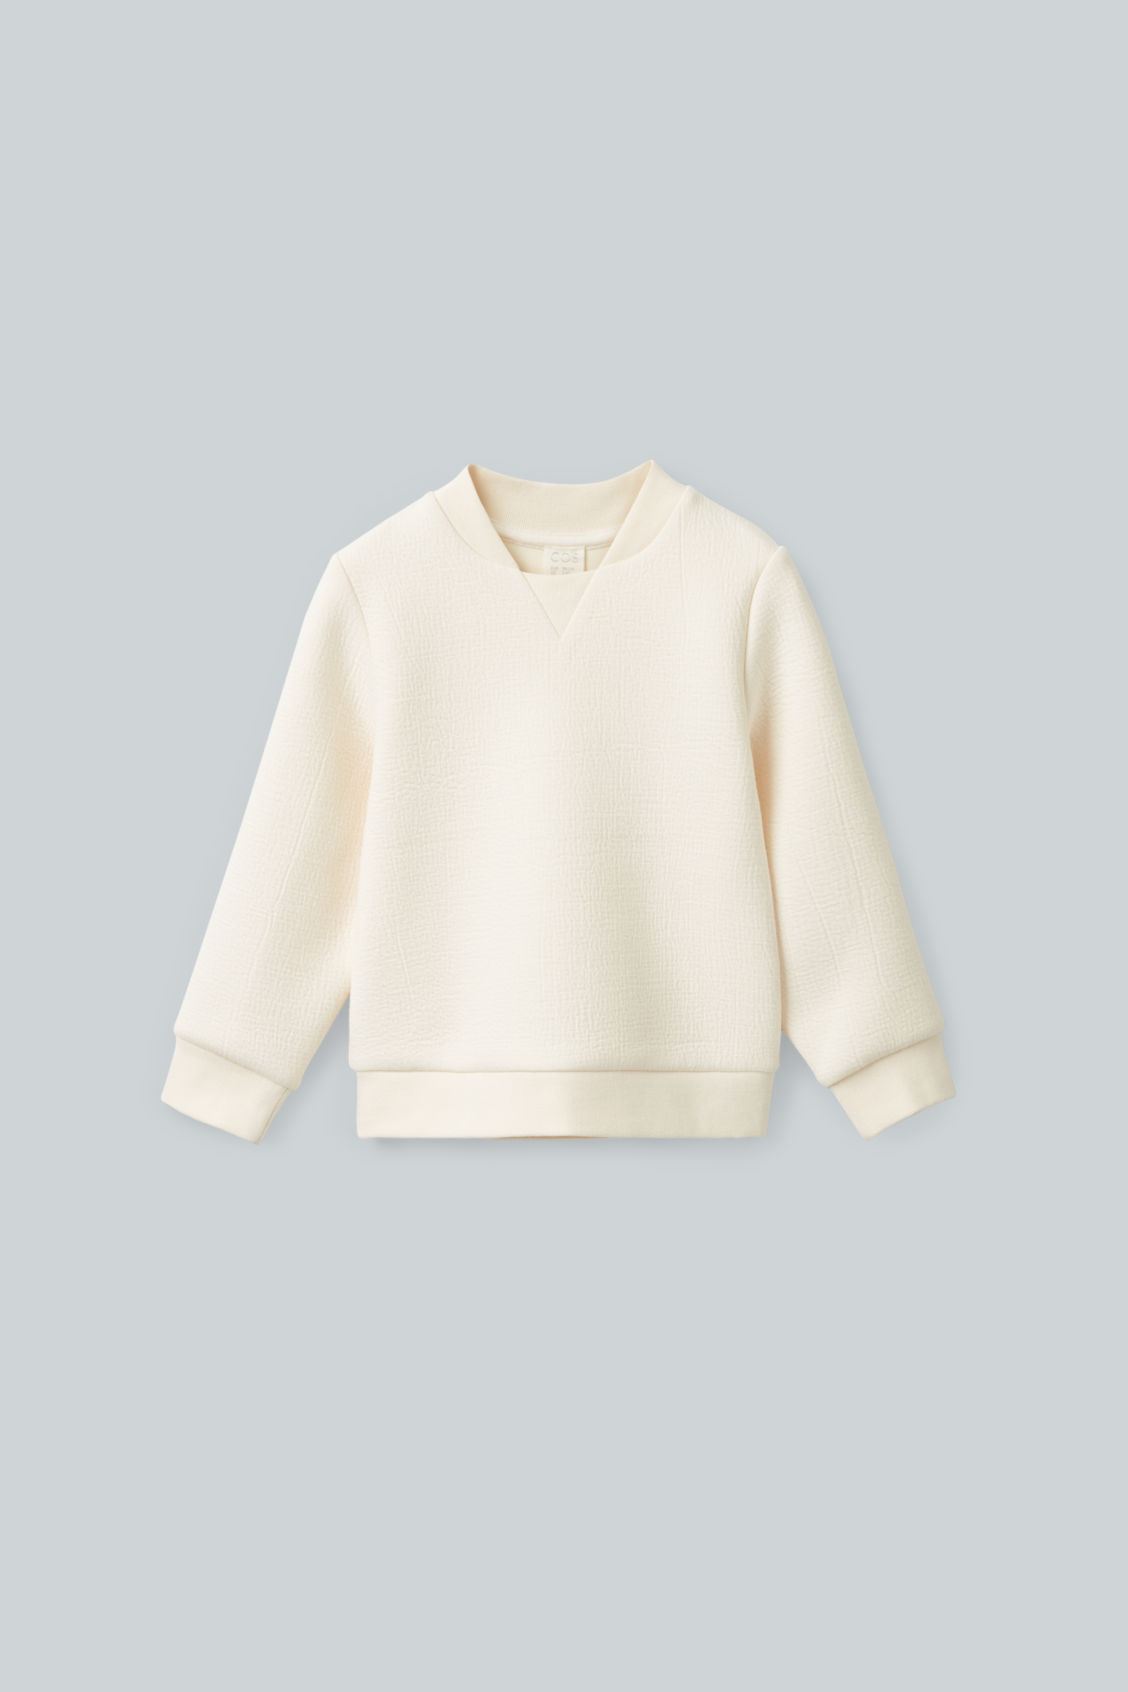 Cos Kids' Textured Cotton-mix Sweatshirt In White